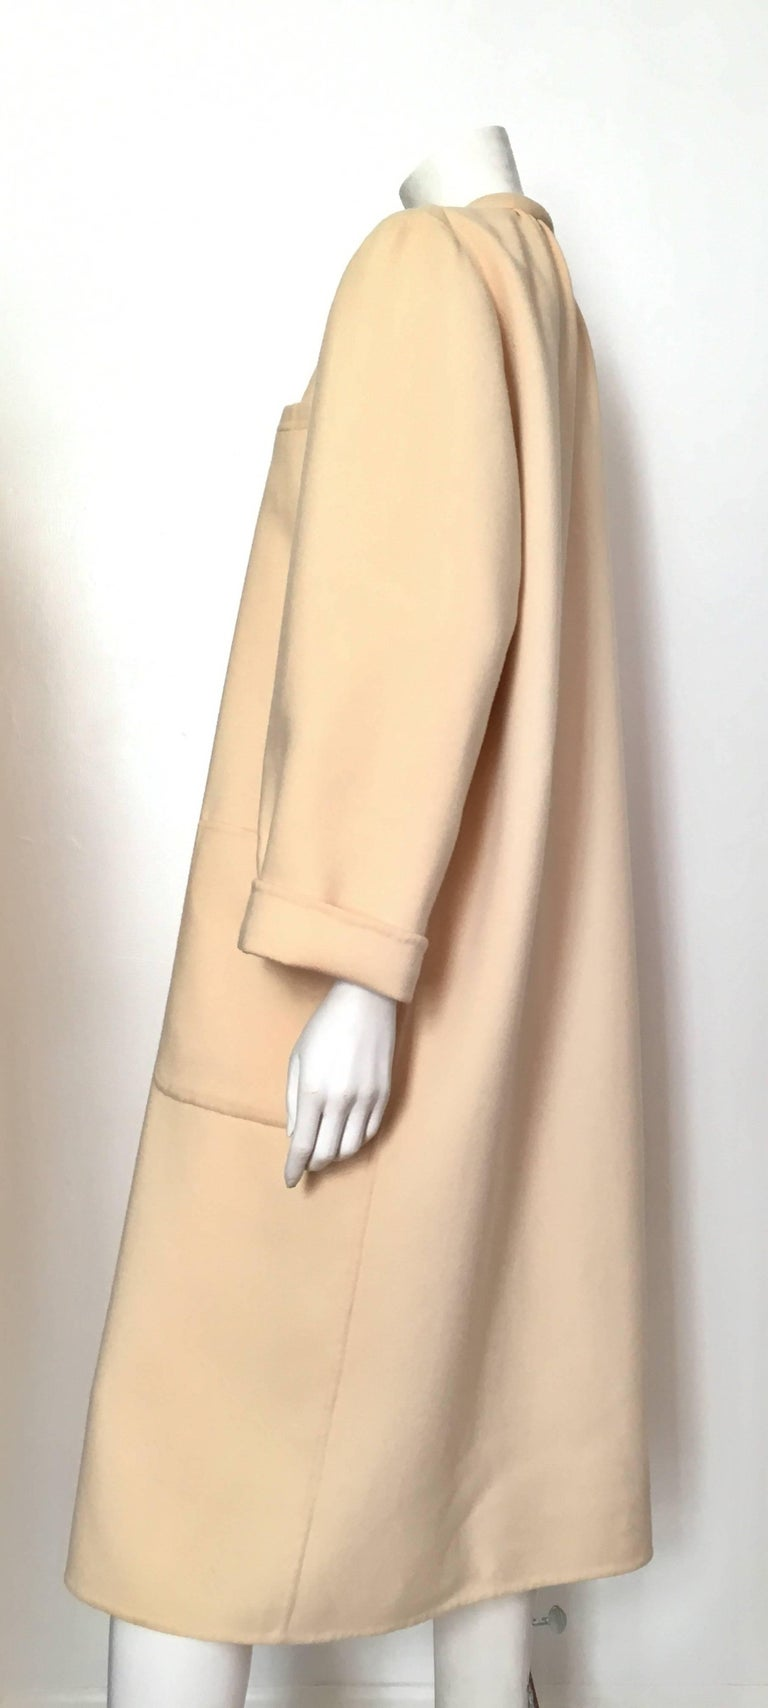 Women's or Men's Salvatore Ferragamo Cream Wool Cocoon Coat with Pockets Size 10 For Sale